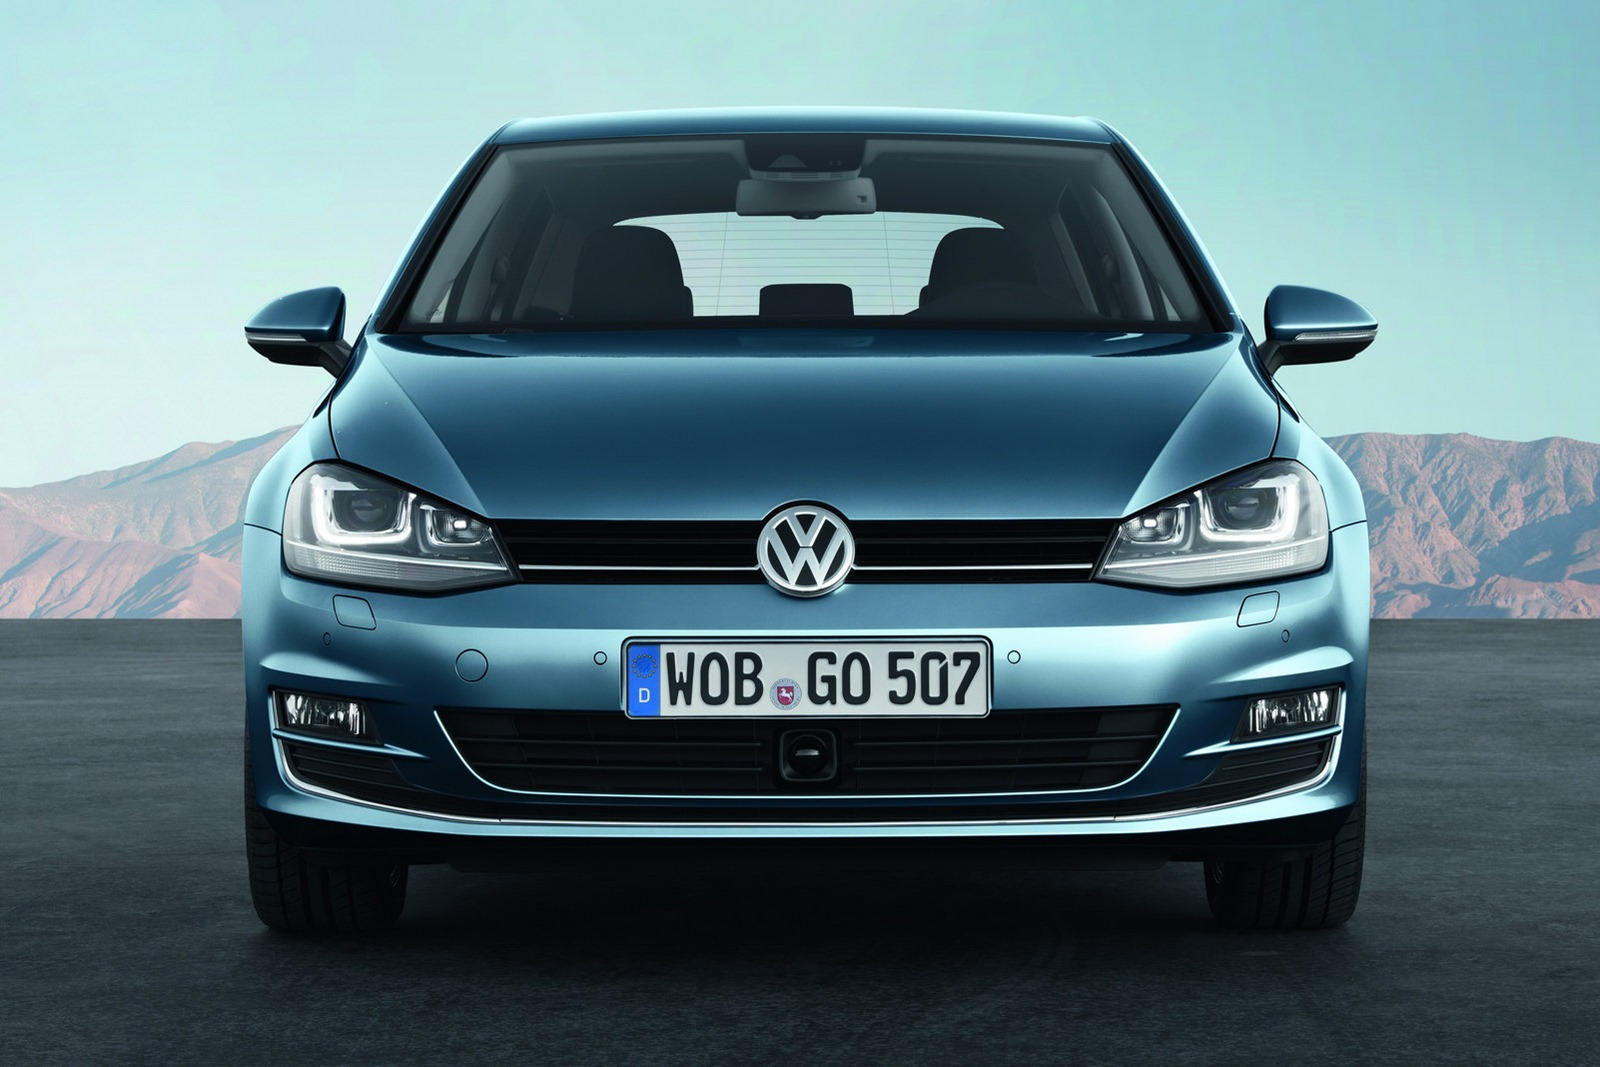 Volkswagen Golf is the 2013 World Car of the Year